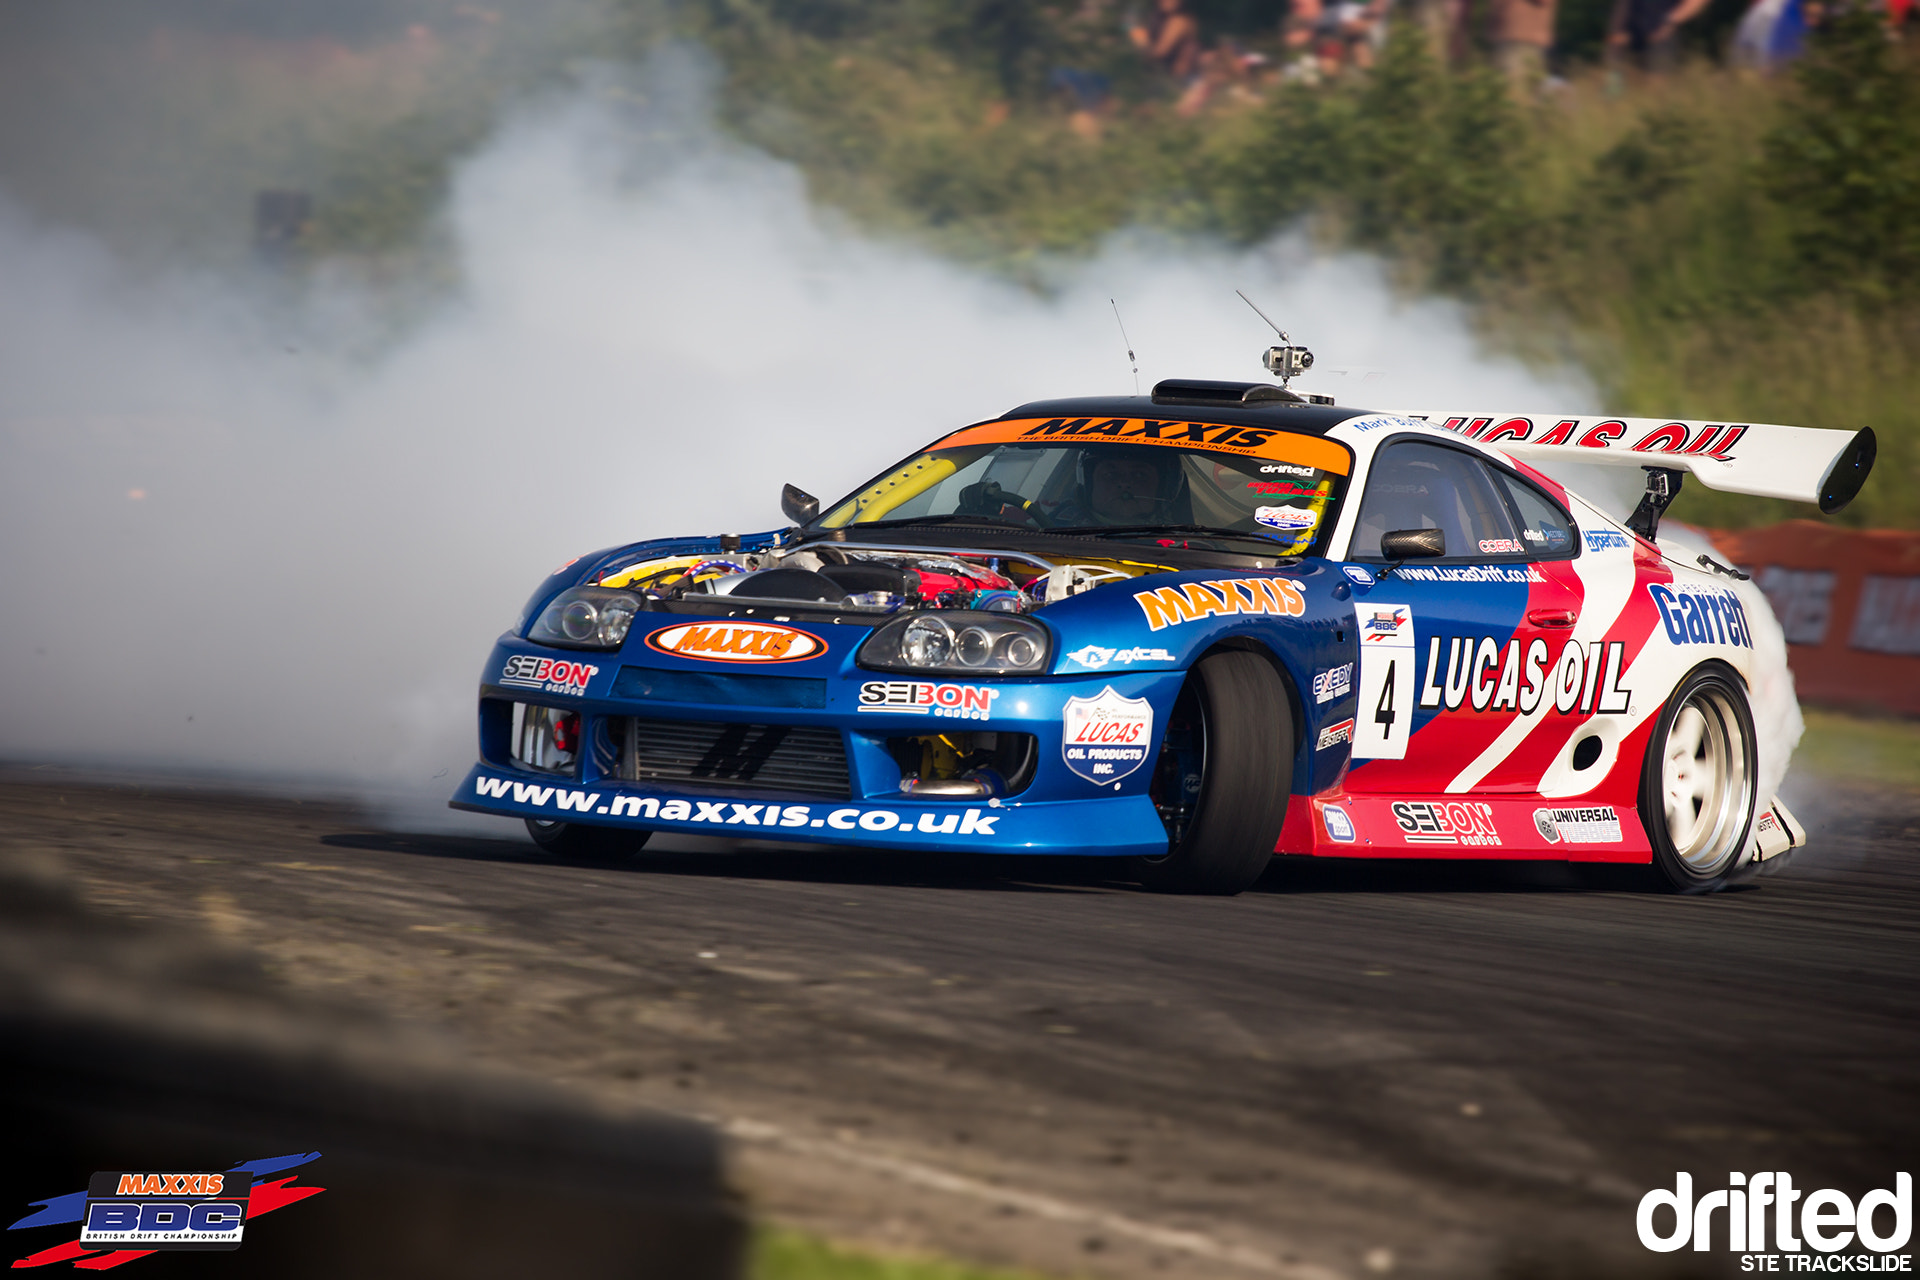 Photograph Uber Mega Awesome Lock, Sats Cosworth Supra Piloted by Mark Luney, Ste Trackslide BDC RD3 by Ste Trackslide on 500px